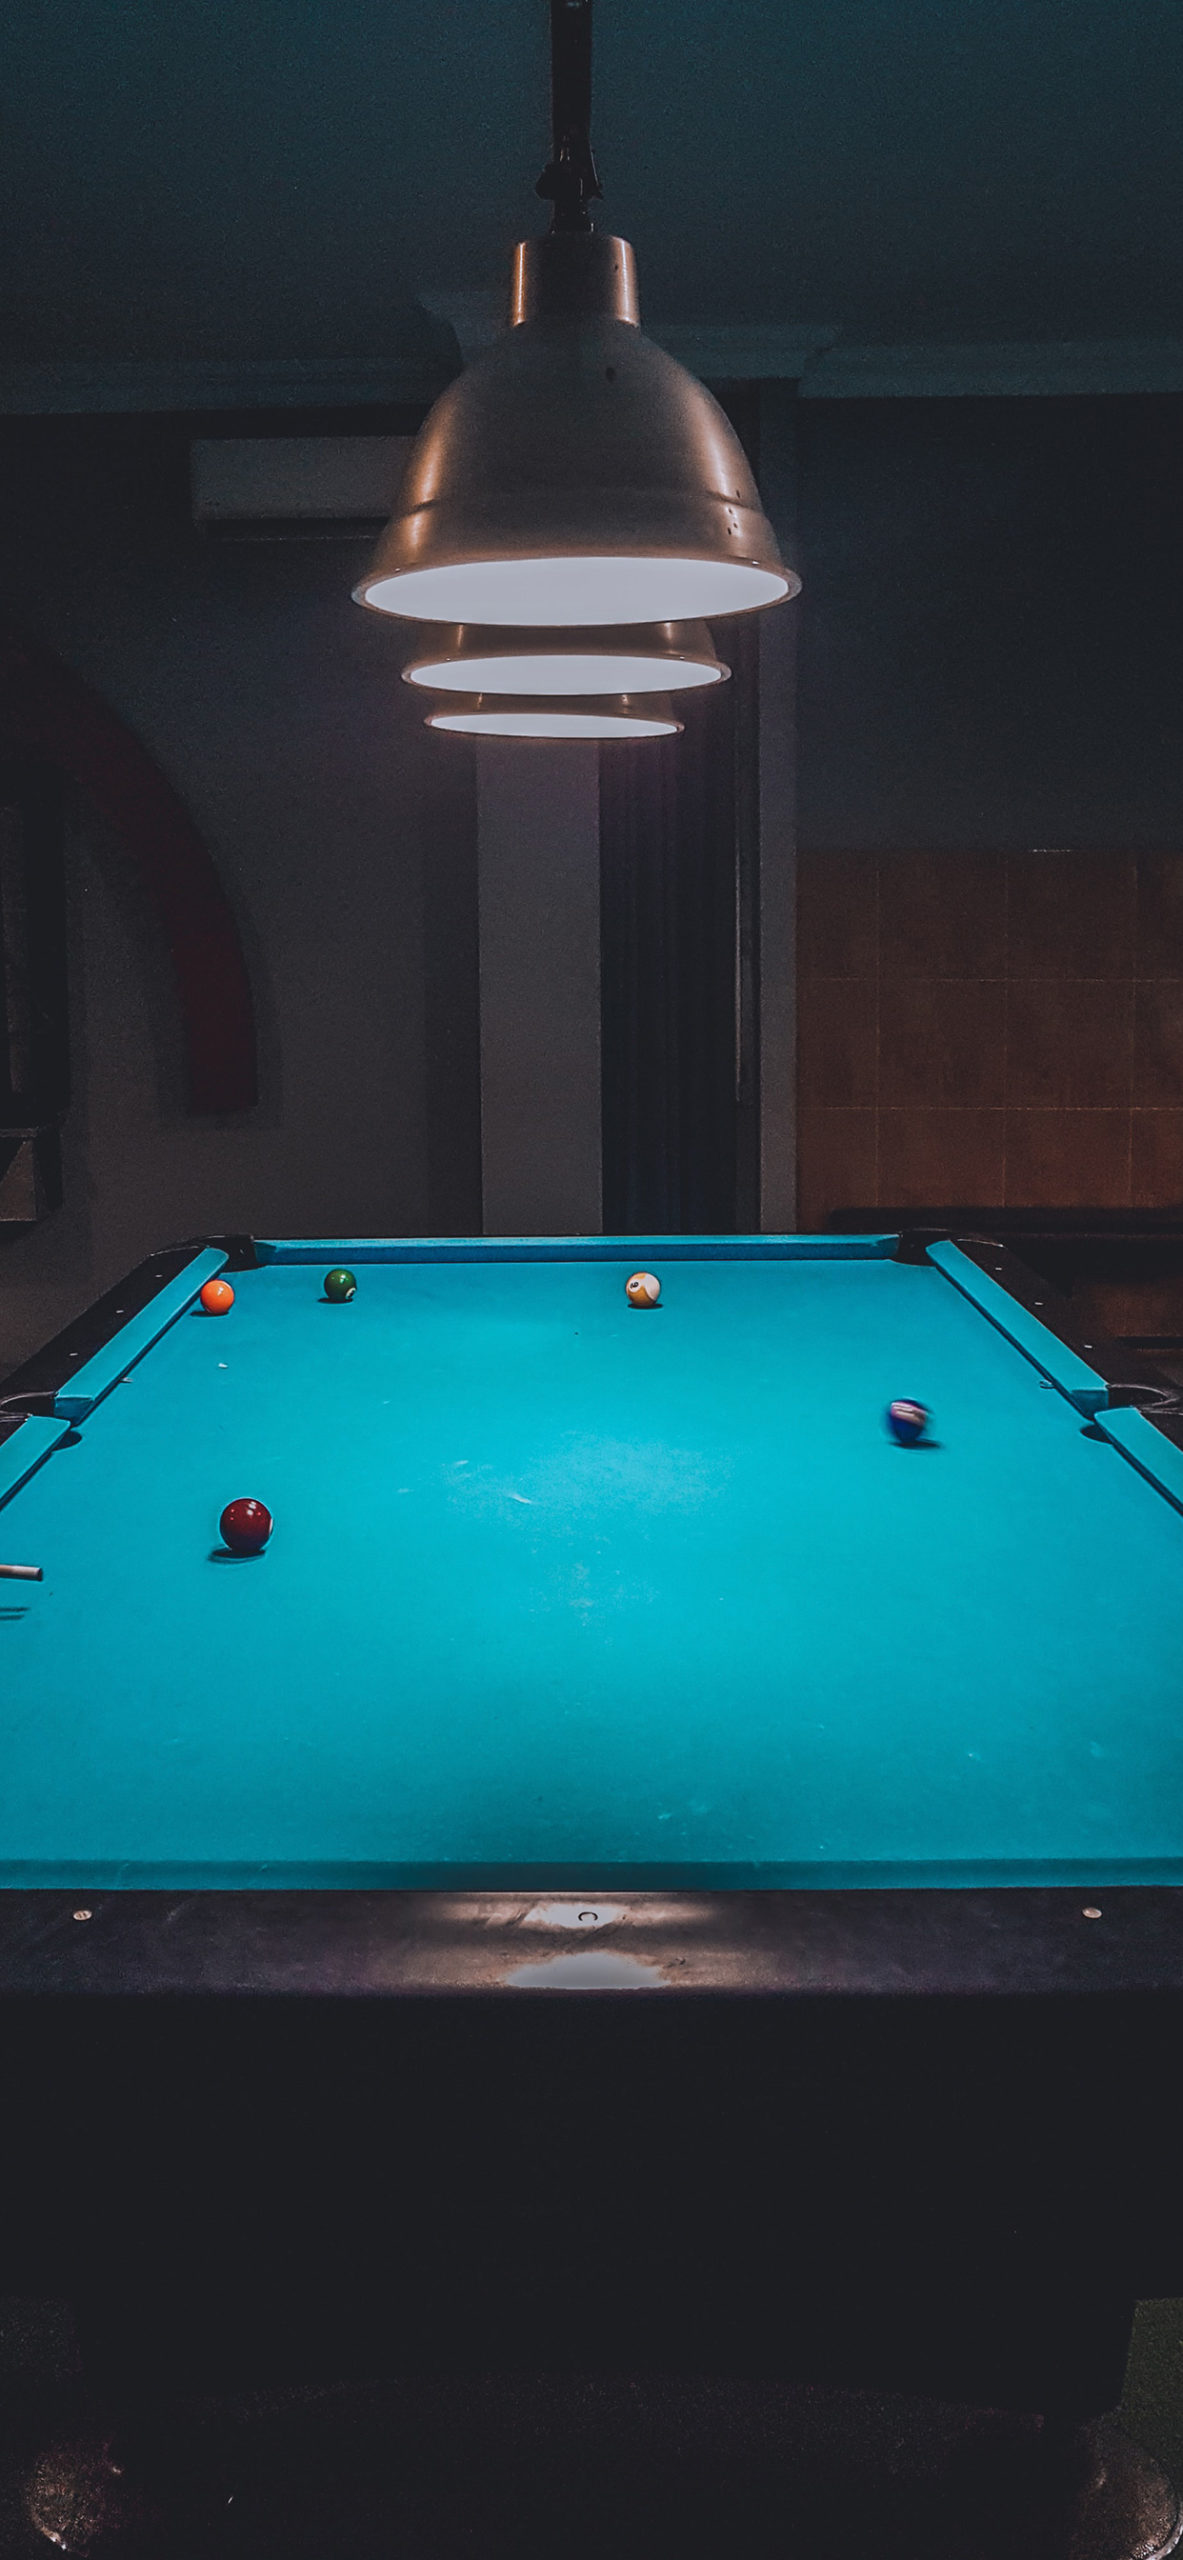 iphone Wallpapers pool table scaled Pool game